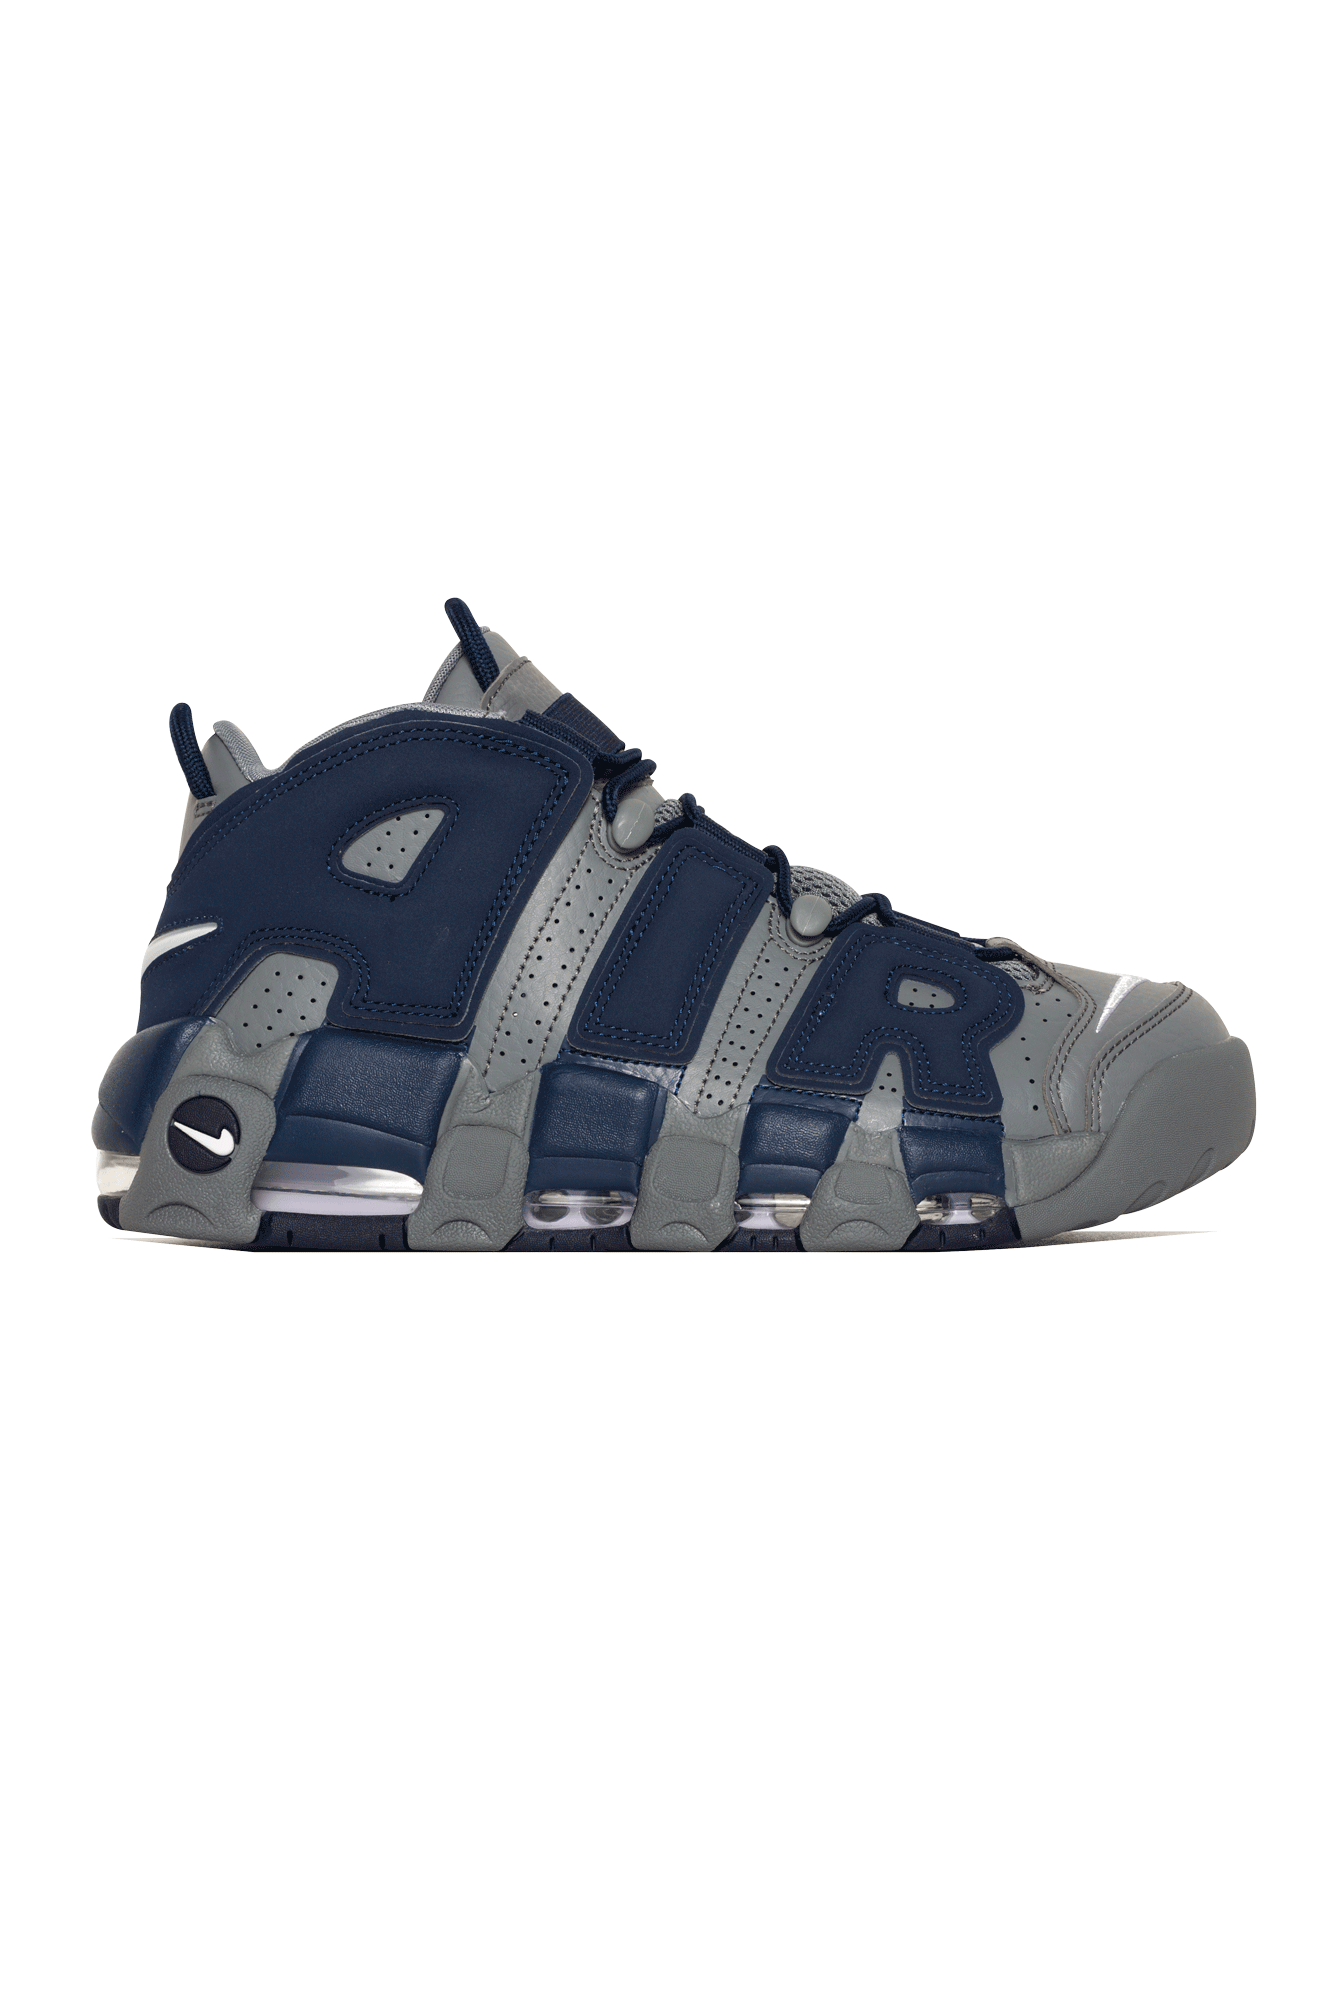 Nike Sneakers Air More Uptempo '96 Grey 921948 #000#003#6